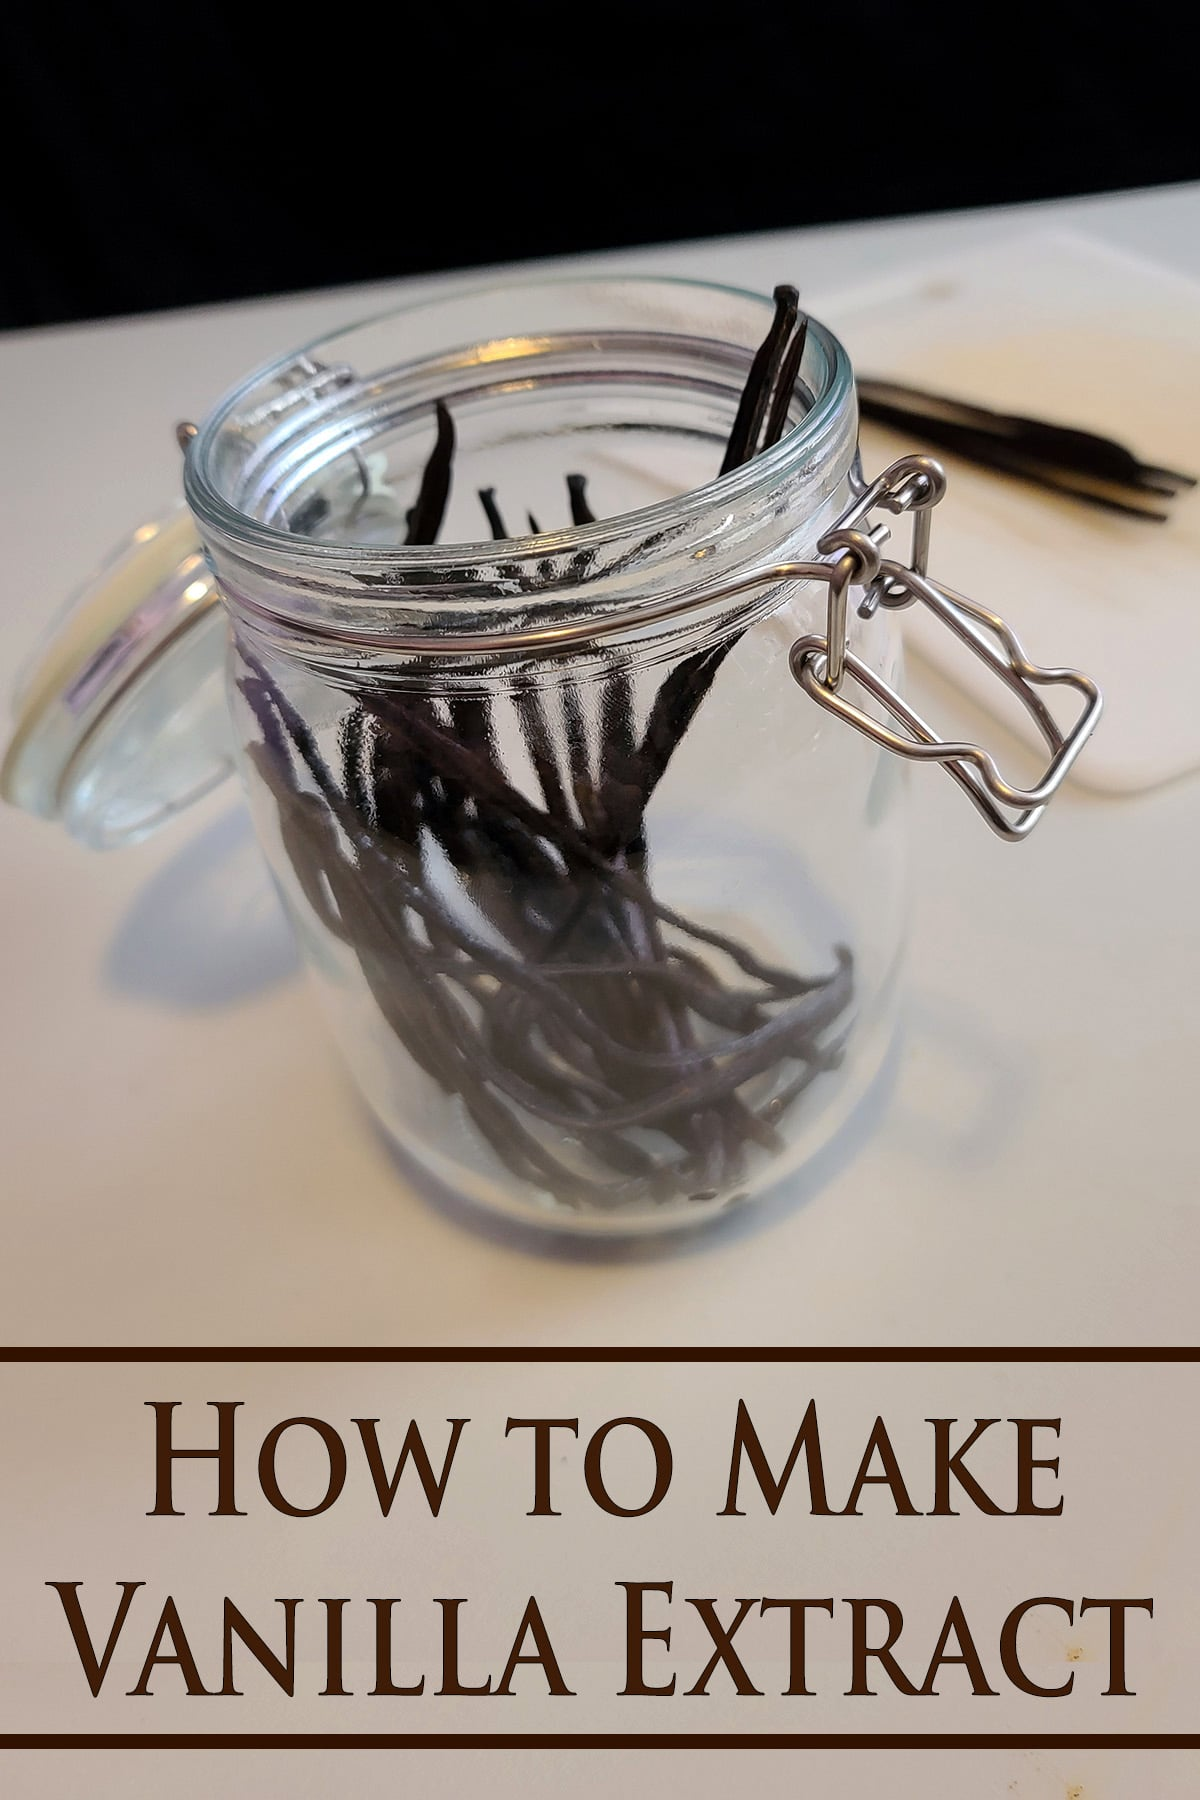 A glass jar with several split vanilla beans in it. Brown text overlay says how to make vanilla extract.